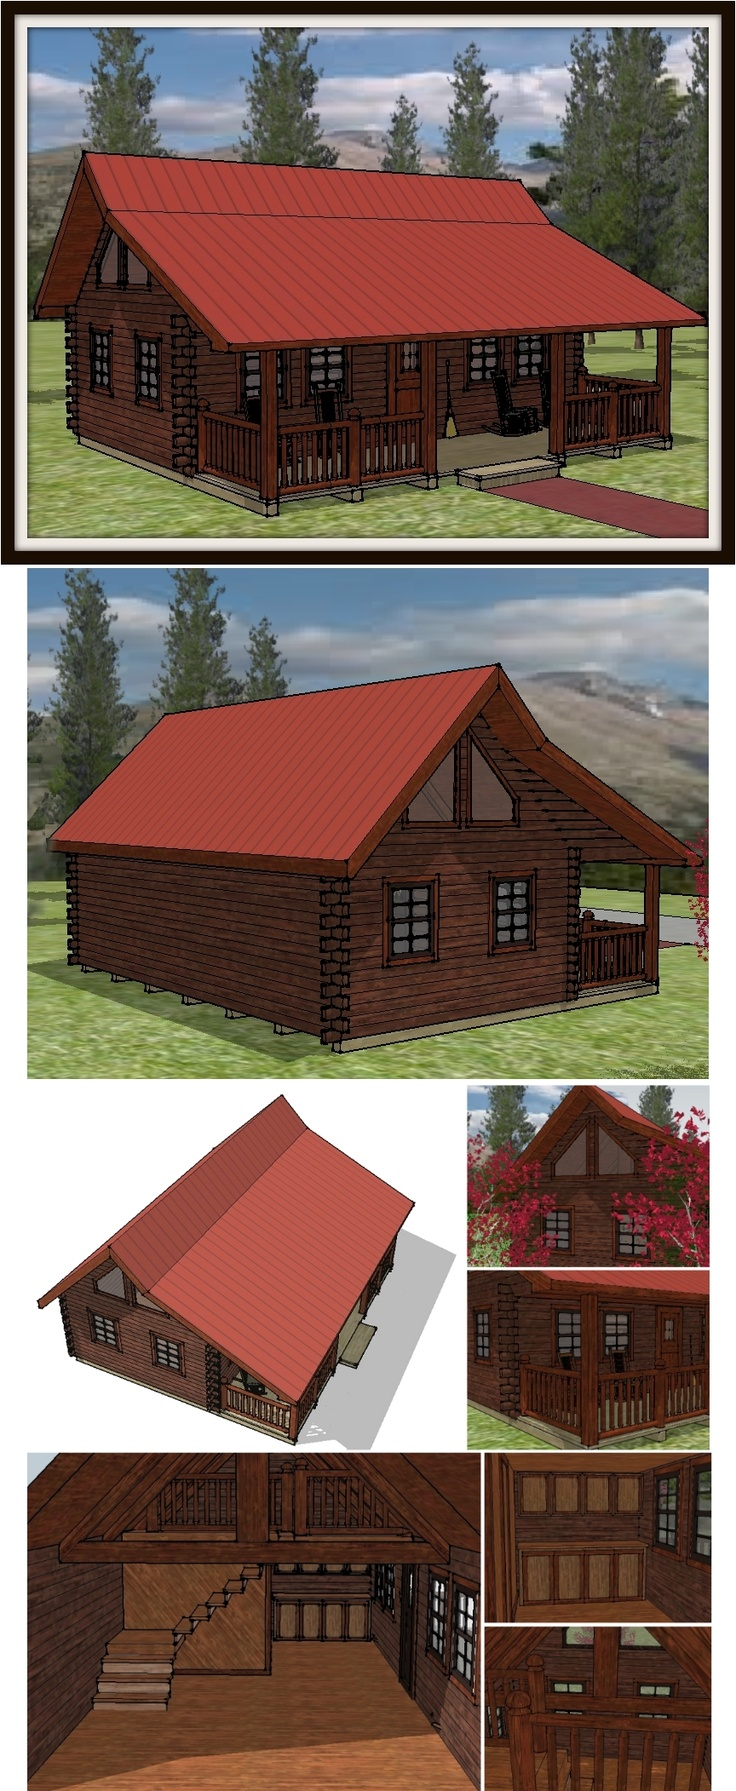 Top 25 Ideas About Log Cabins On Pinterest Kid Playhouse Built In Bunks And Hunters